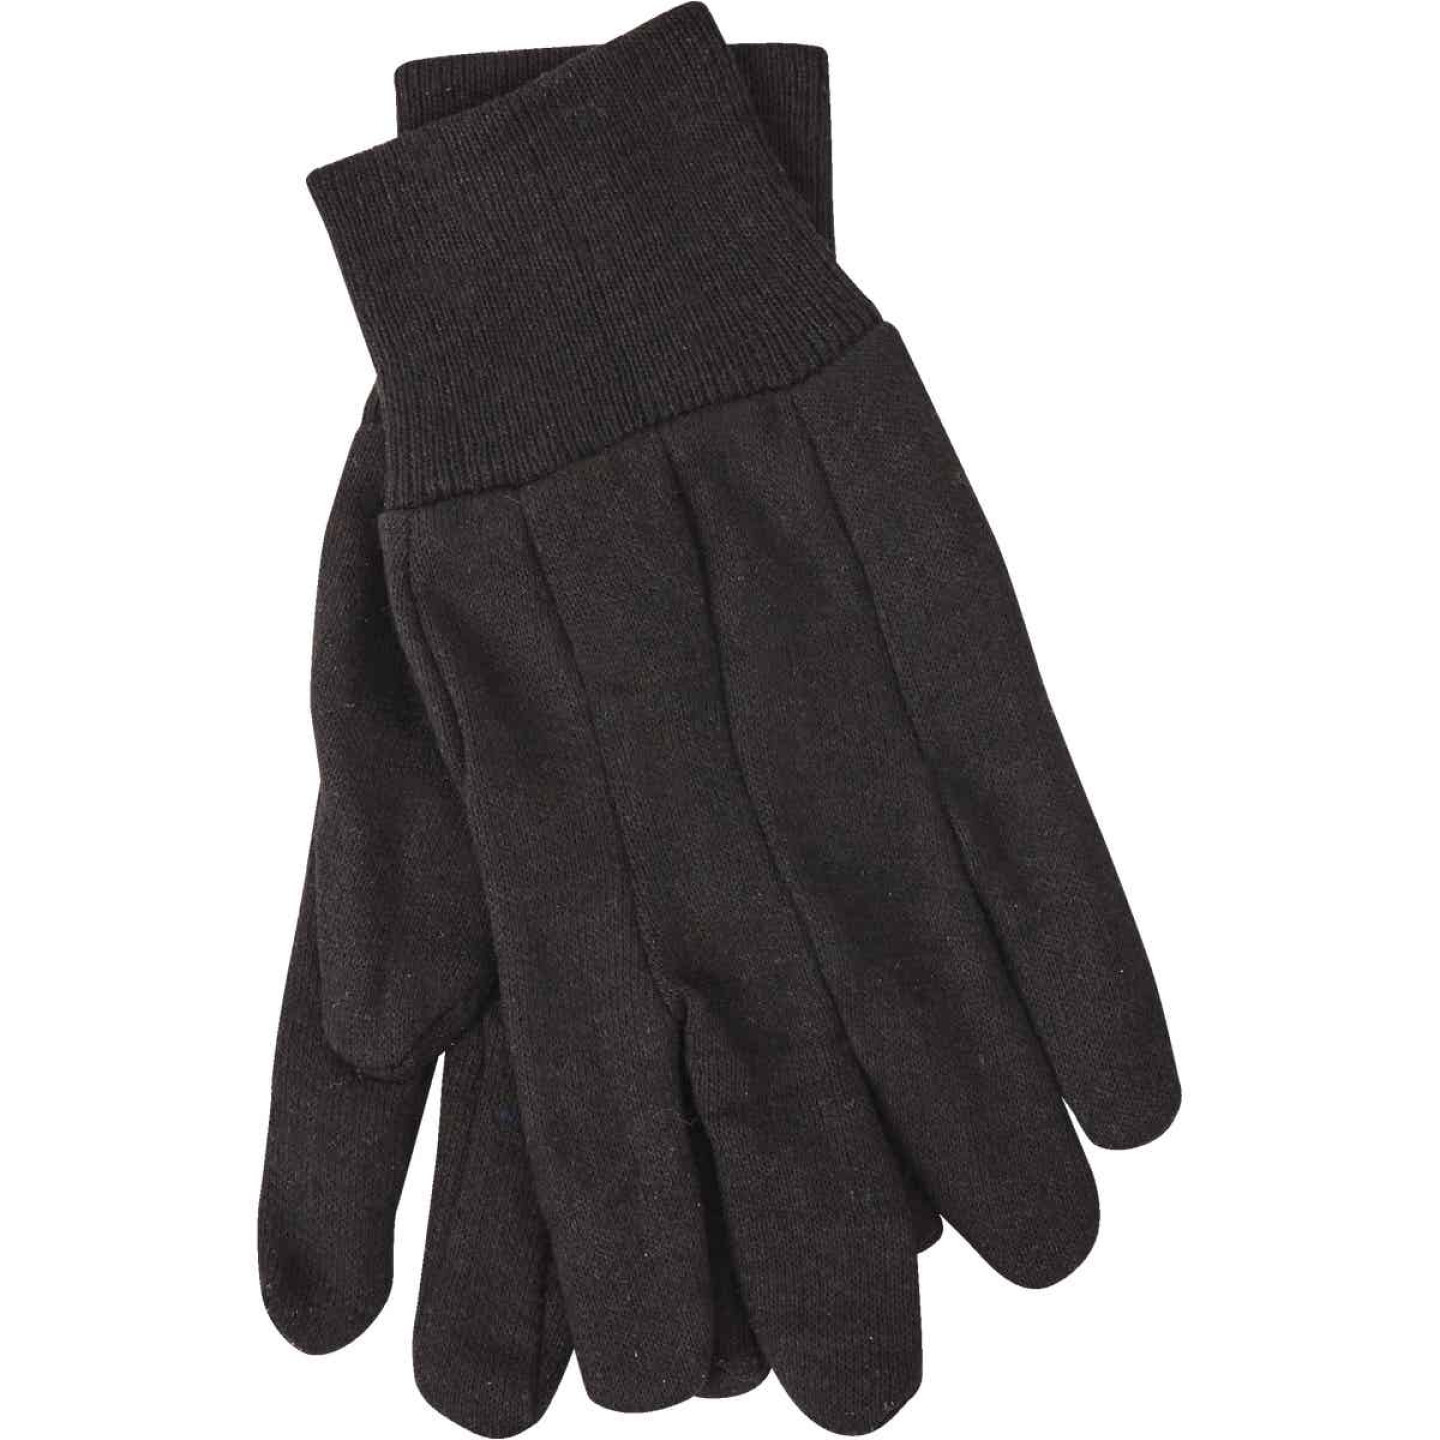 Do it Women's Large Jersey Work Glove Image 3